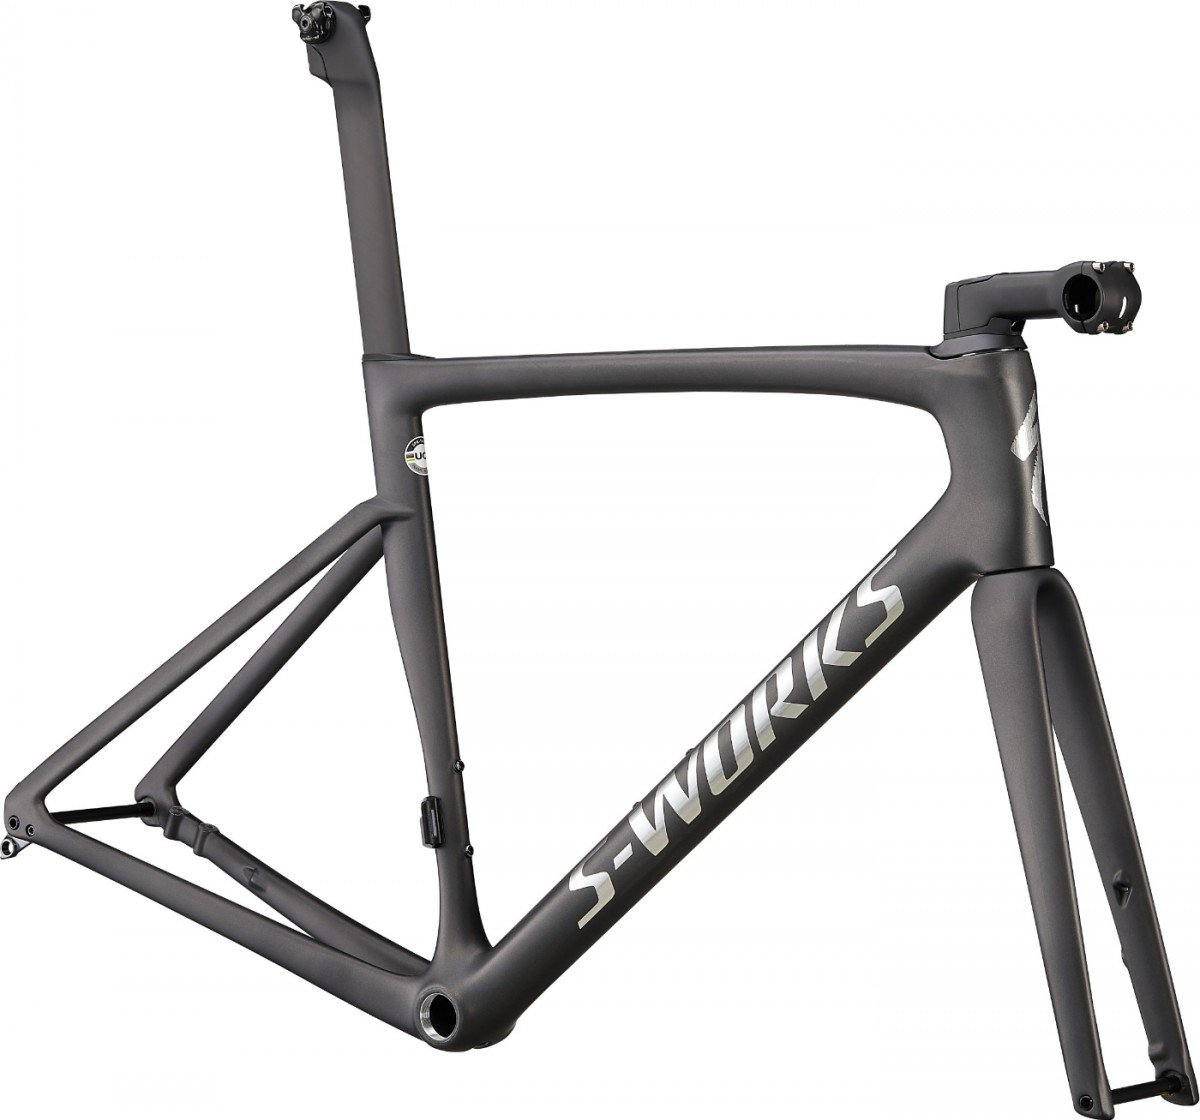 EAN-code: 70622-0054 Product: SPECIALIZED S-WORKS TARMAC SL7 FRAMESET, SATIN CARBON / SPECTRAFLAIR TINT / GLOSS BRUSHED C (Part-No: 70622-0054) at cycleXperience.nl